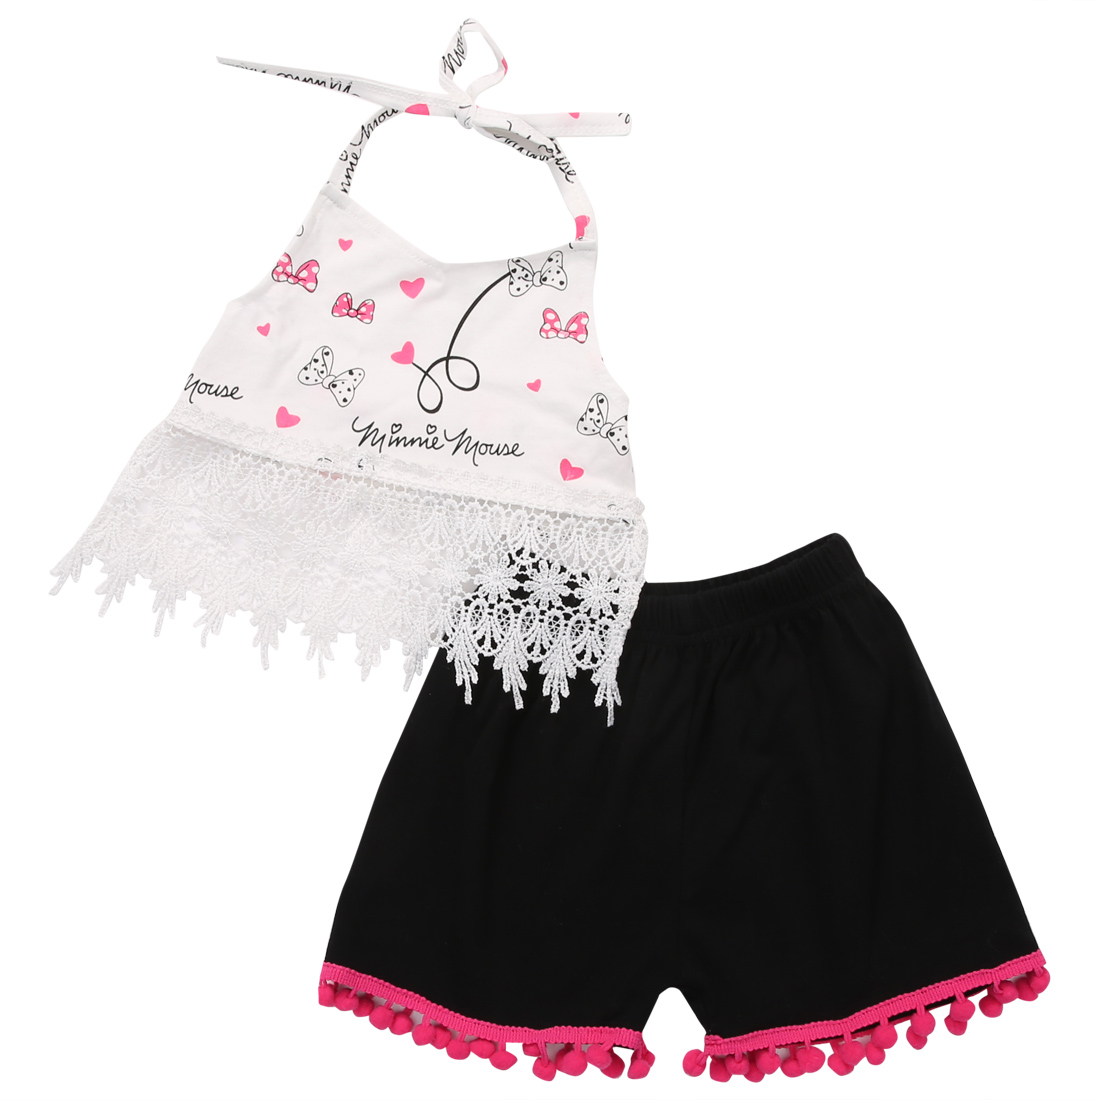 2PCS Newborn Baby Girl Clothes 2017 Summer Lace Crop Top Tanks +Tassel Hot Pant Outfit Kids Girls Clothing Set Bebek Giyim 0-24M 2017 newborn baby boy girl clothes floral infant bebes romper bodysuit and bloomers bottom 2pcs outfit bebek giyim clothing